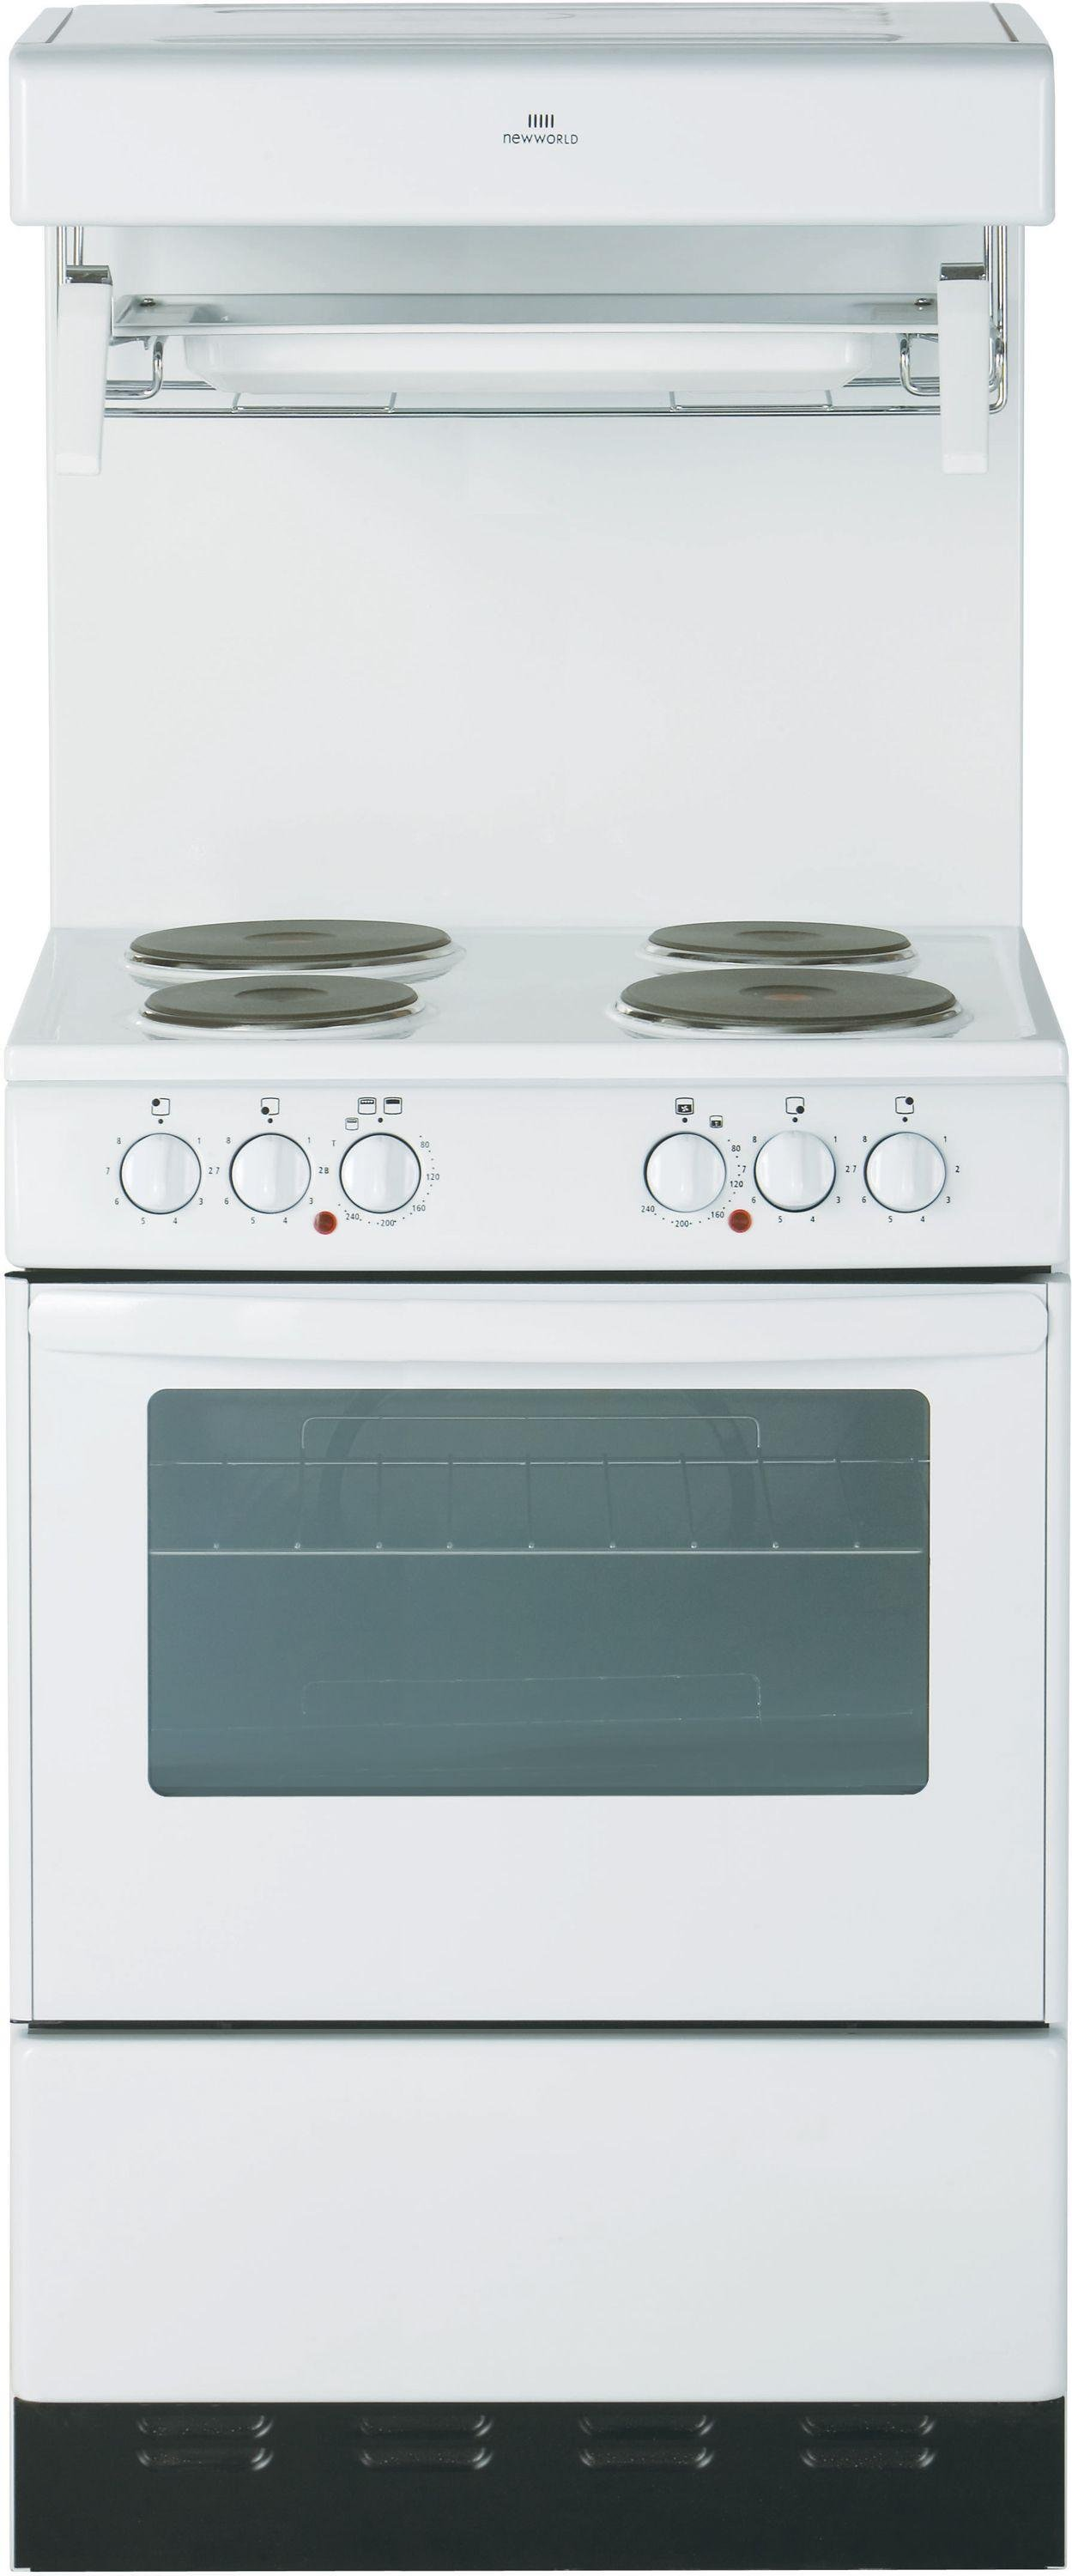 New World - NW55HLGE 55cm Electric Cooker - White